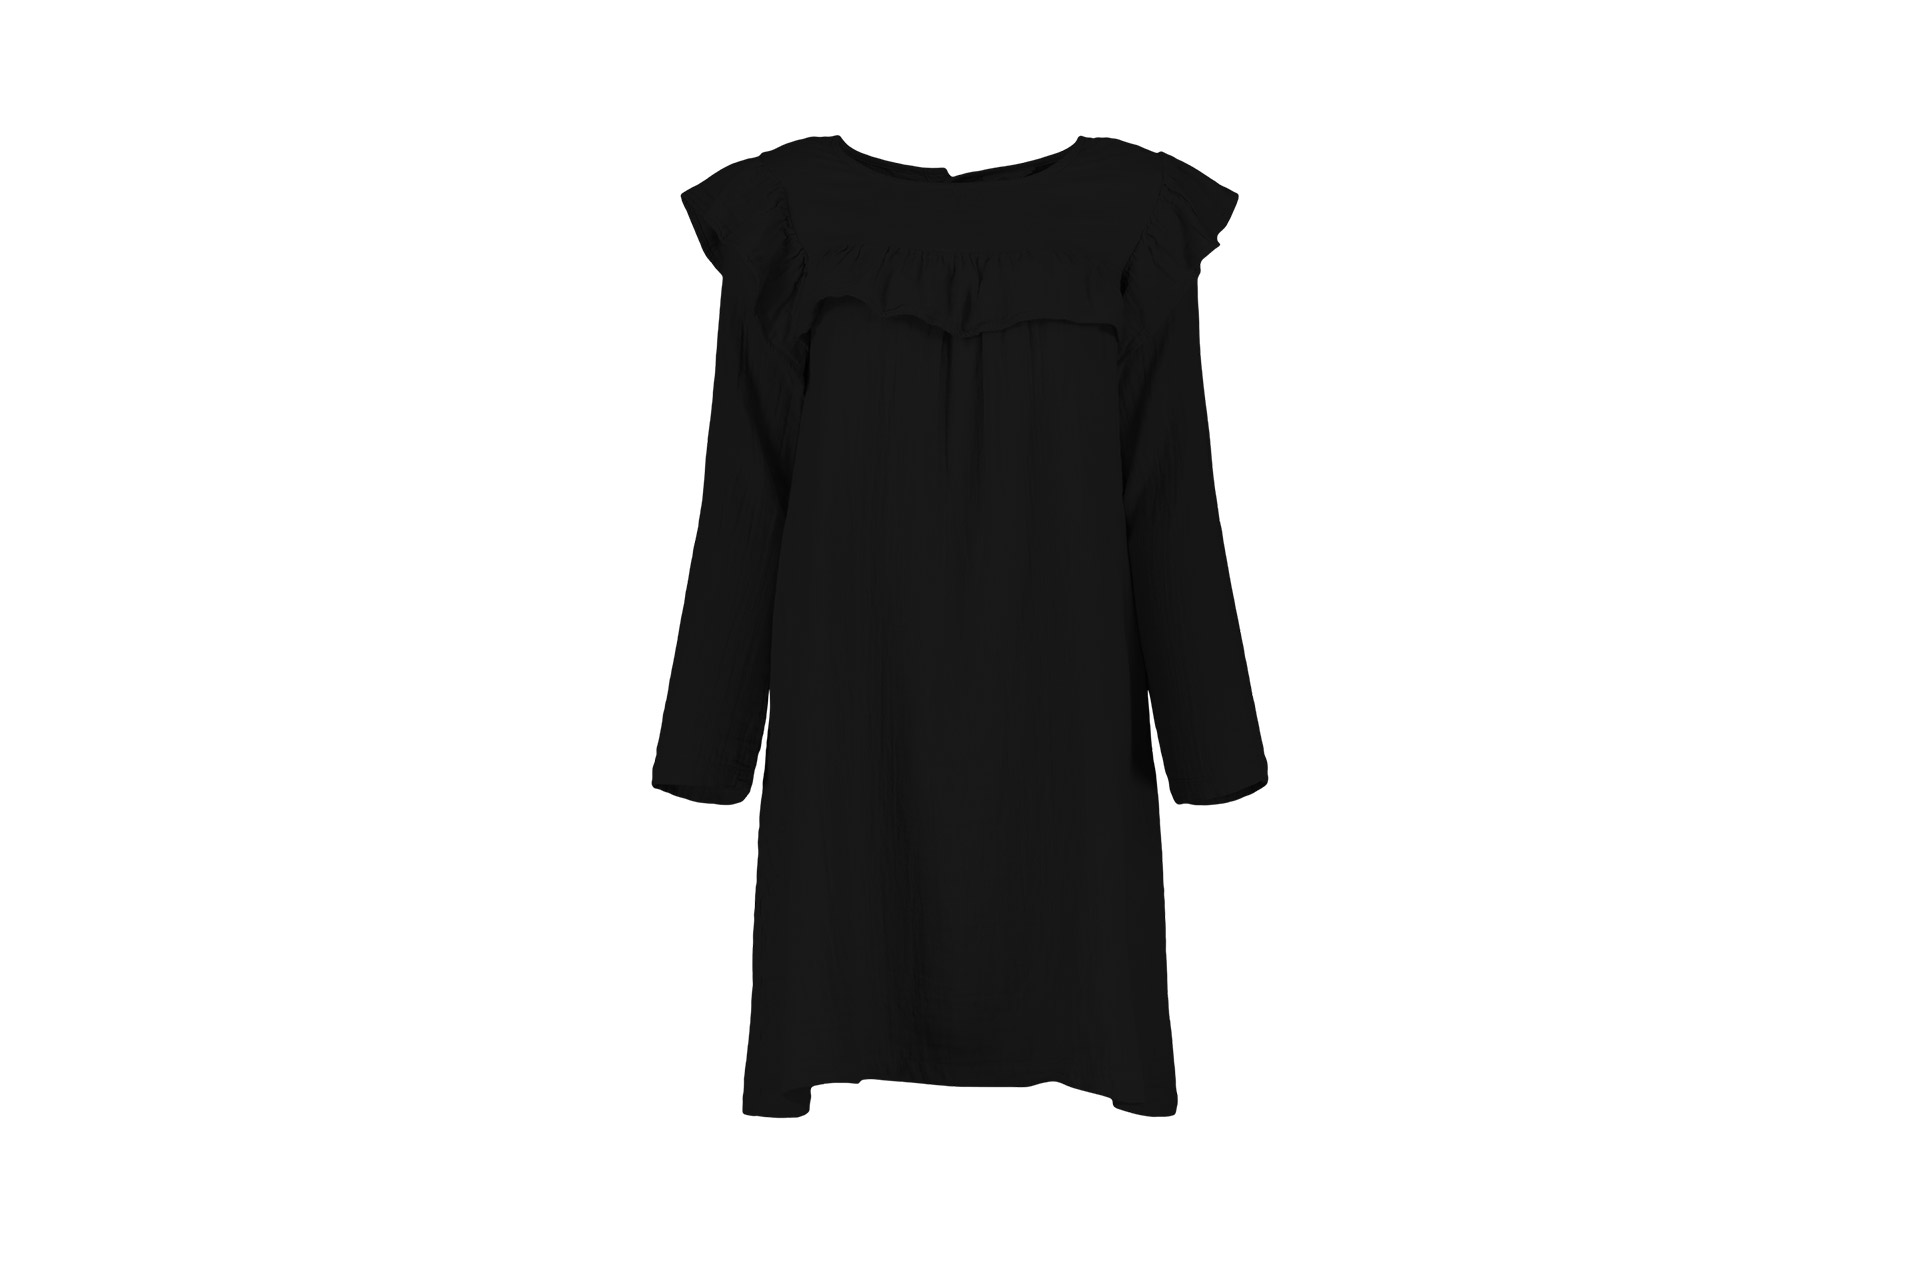 ROBE GISELE WOMAN